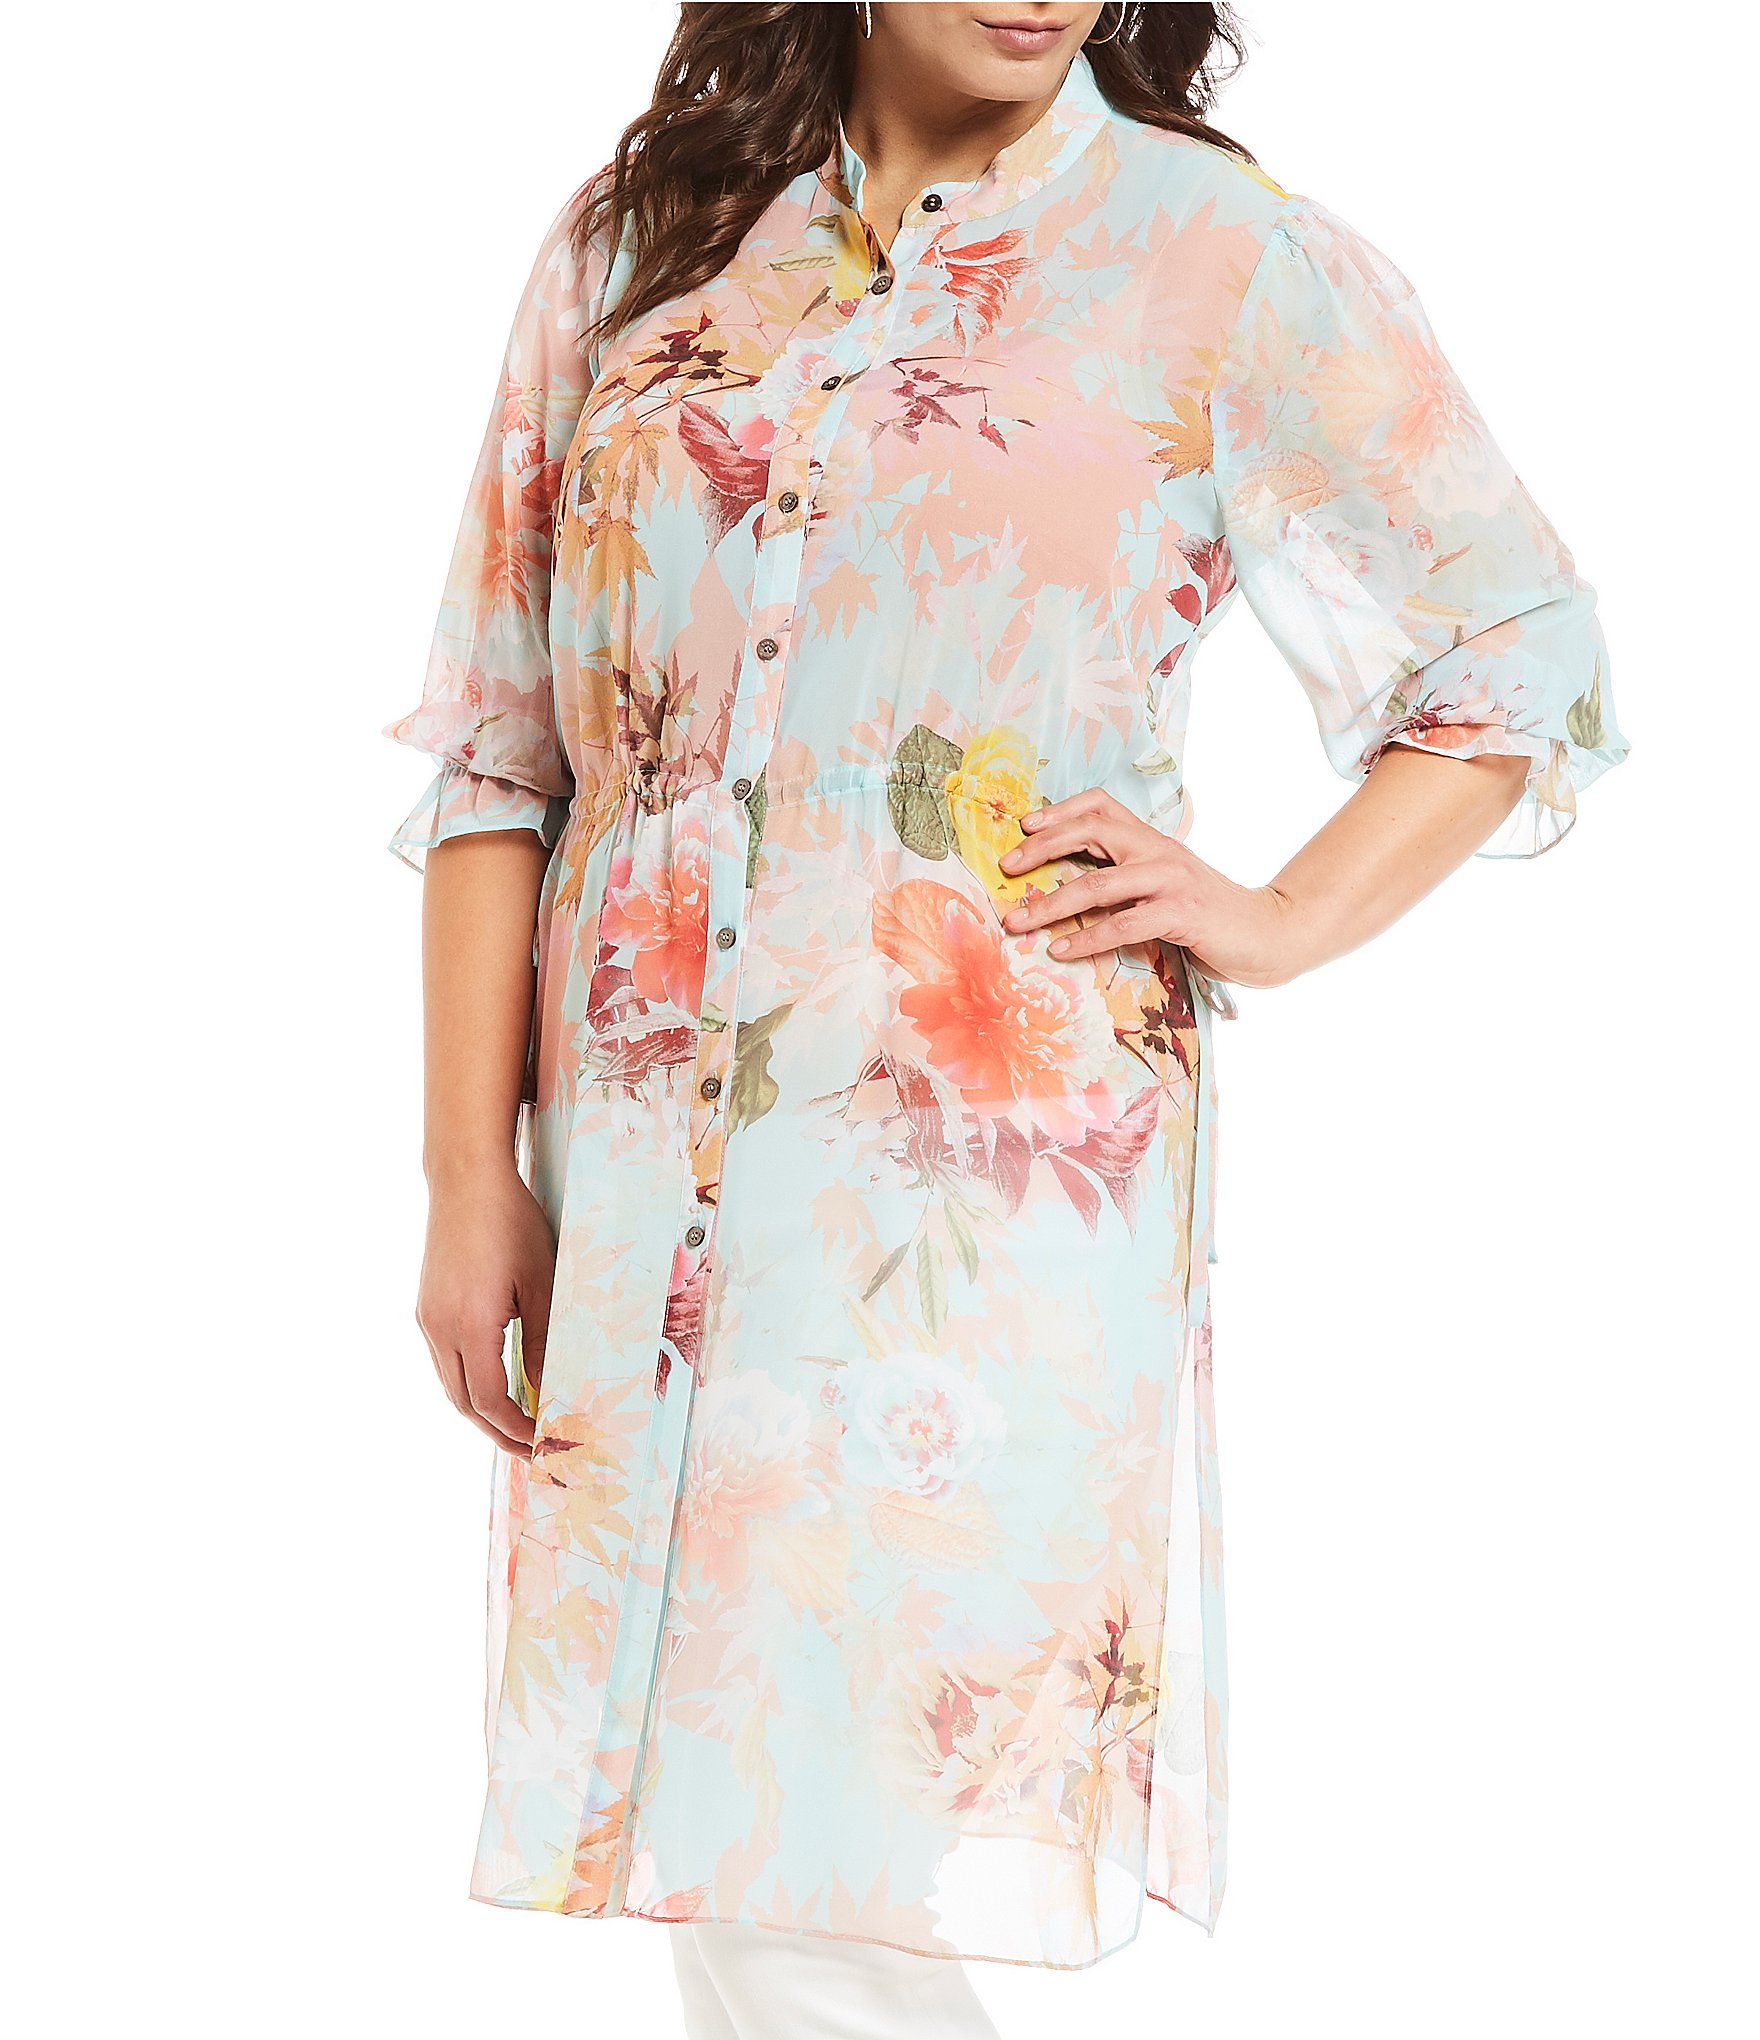 489199180a8 Vince Camuto Plus Size Faded Blooms Floral Print Side Tie Tunic  Dillards